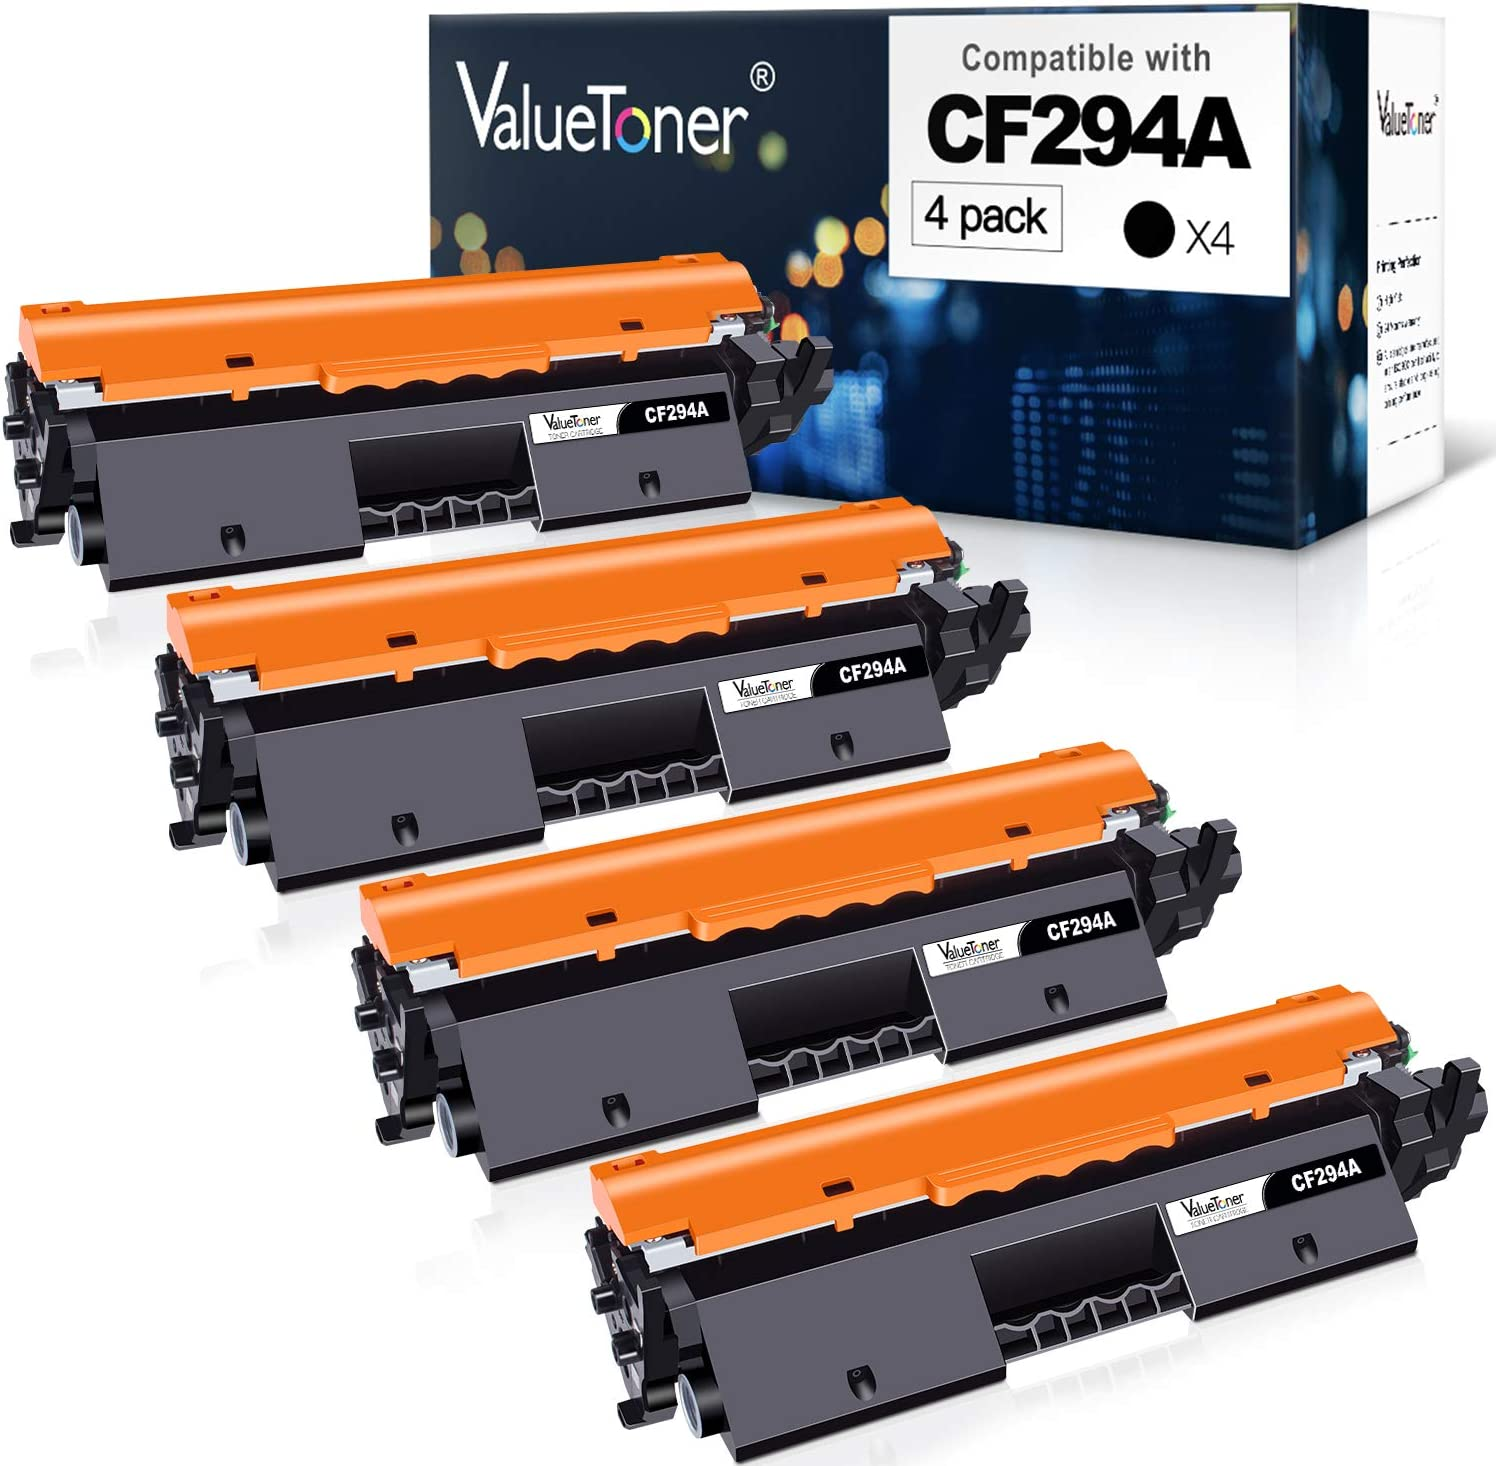 Valuetoner Compatible Toner Cartridge Replacement for HP 94A CF294A for Laserjet Pro MFP M148dw, M148fdw, M118dw, Laserjet M148, M118 Printer (Black, 4-Pack)